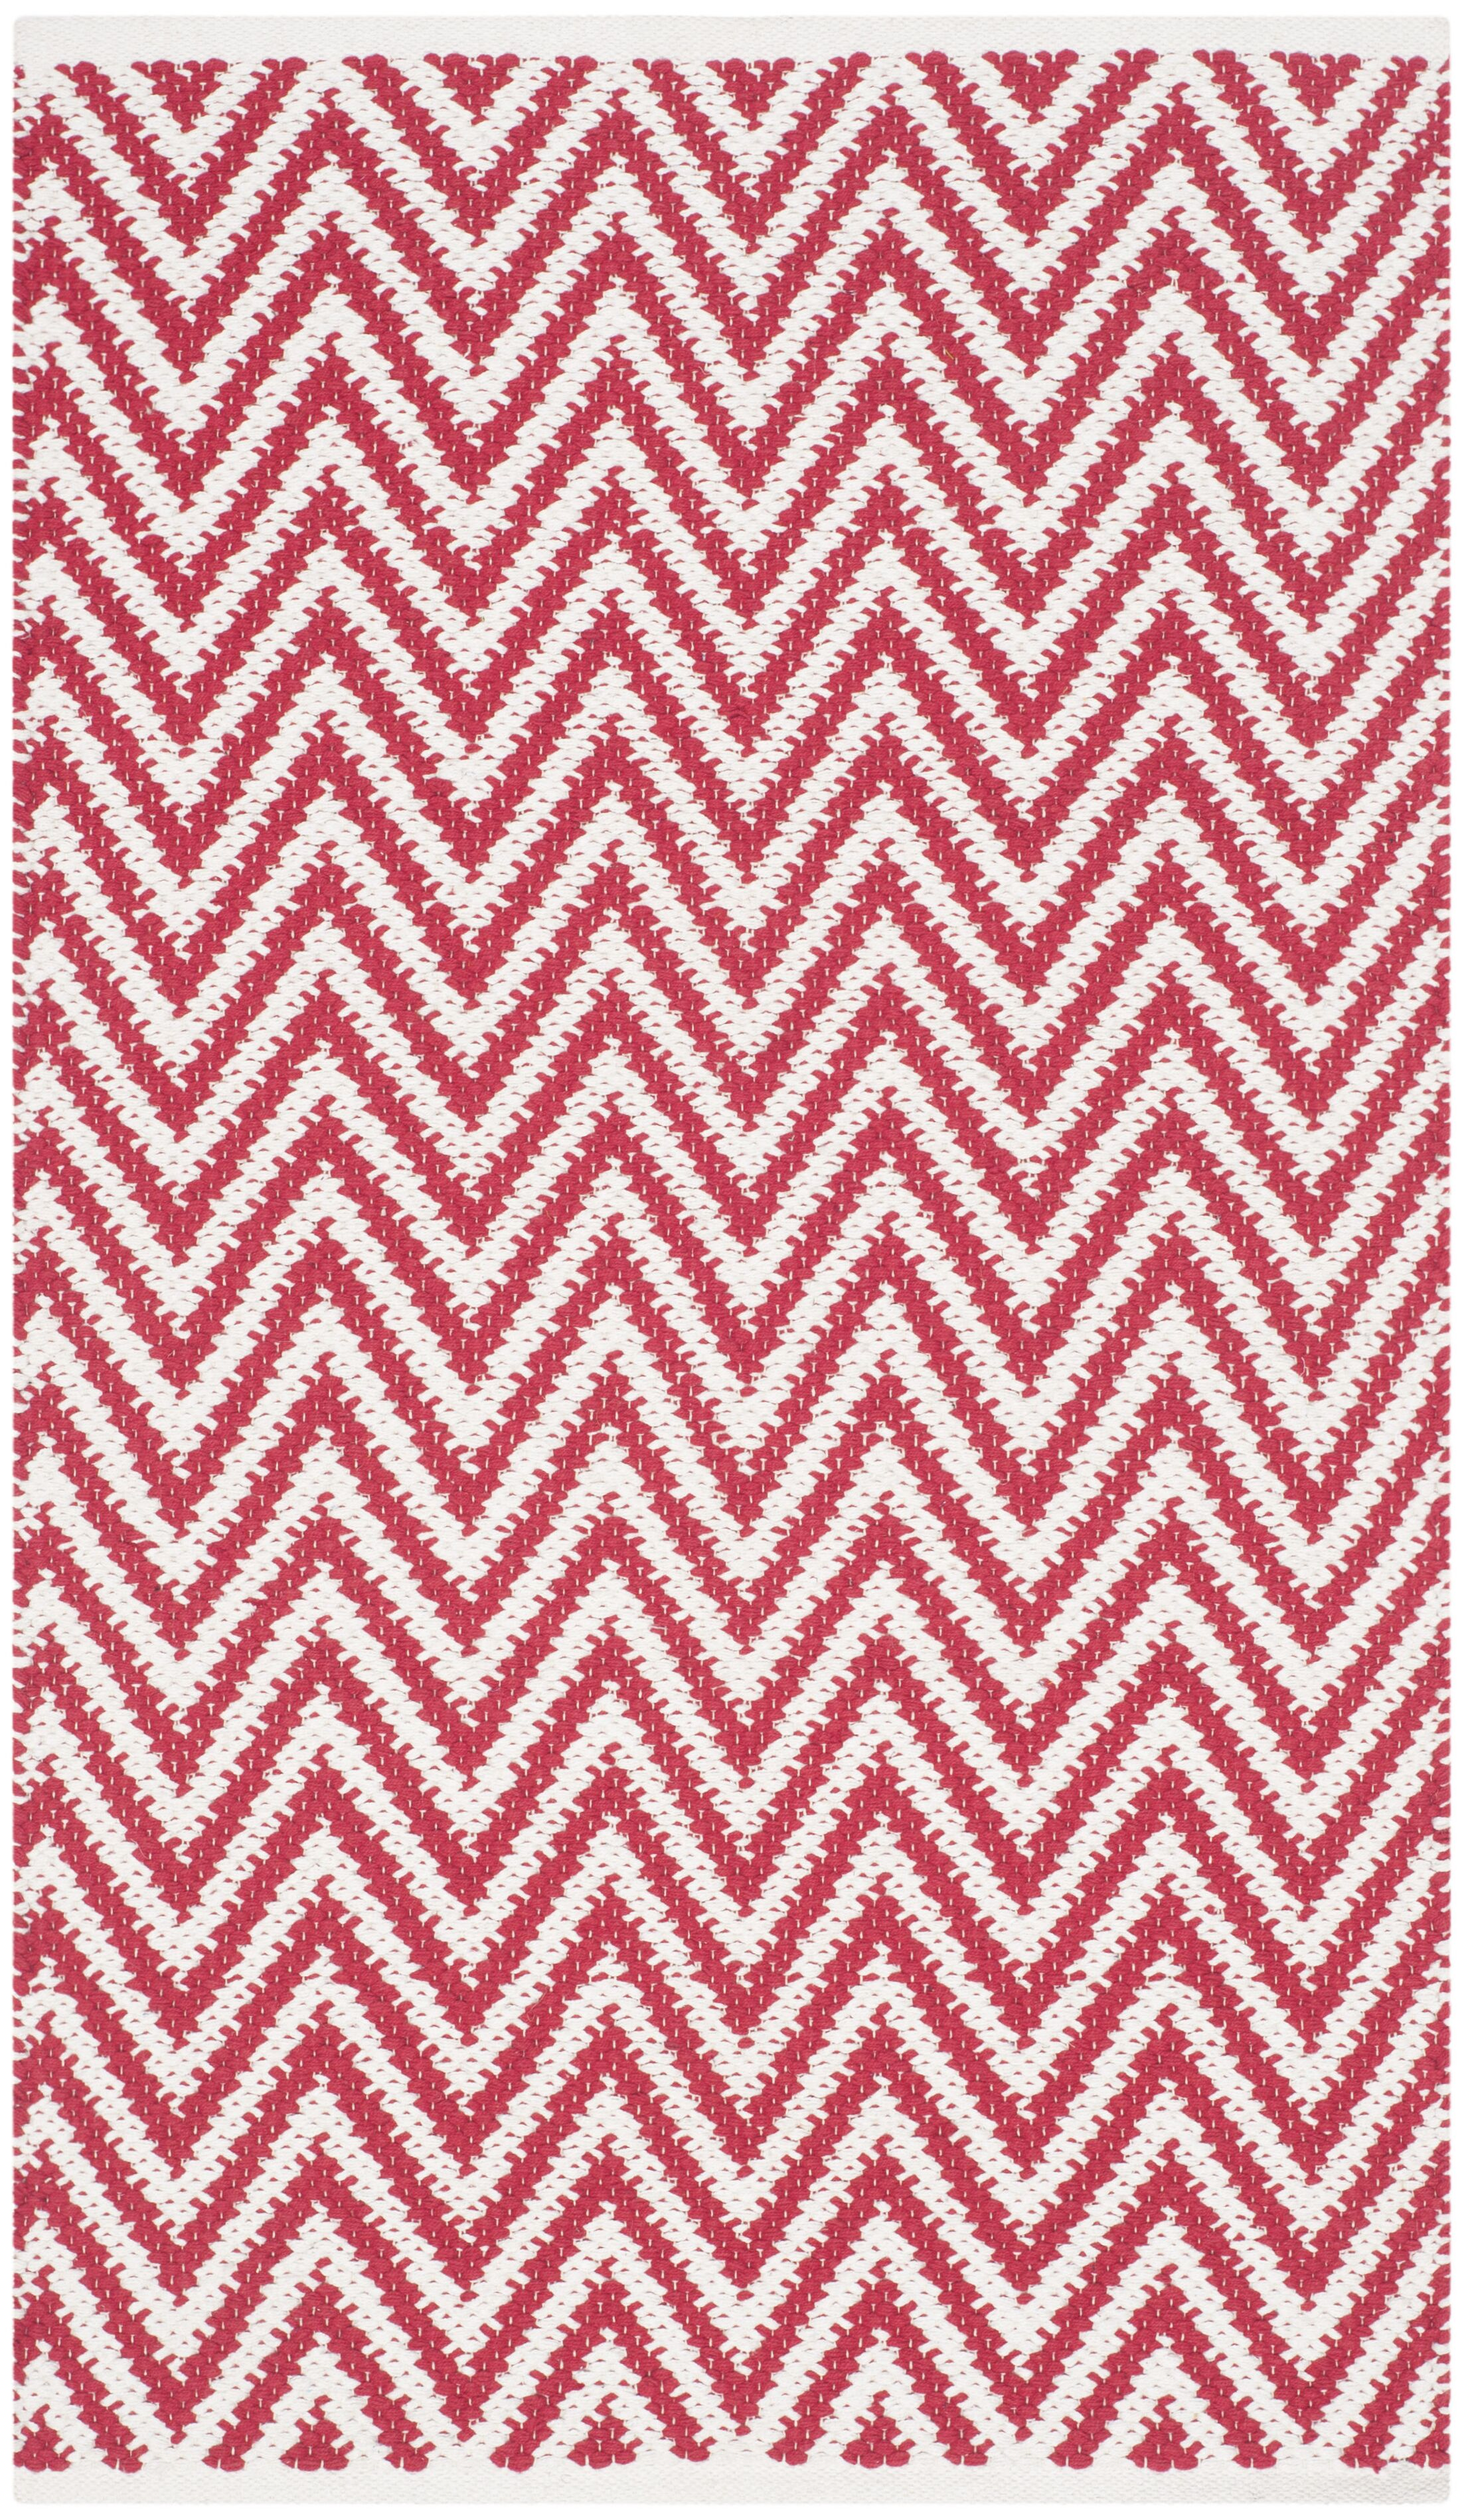 Whitton Hand-woven Red/Ivory Area Rug Rug Size: Rectangle 5' x 7'